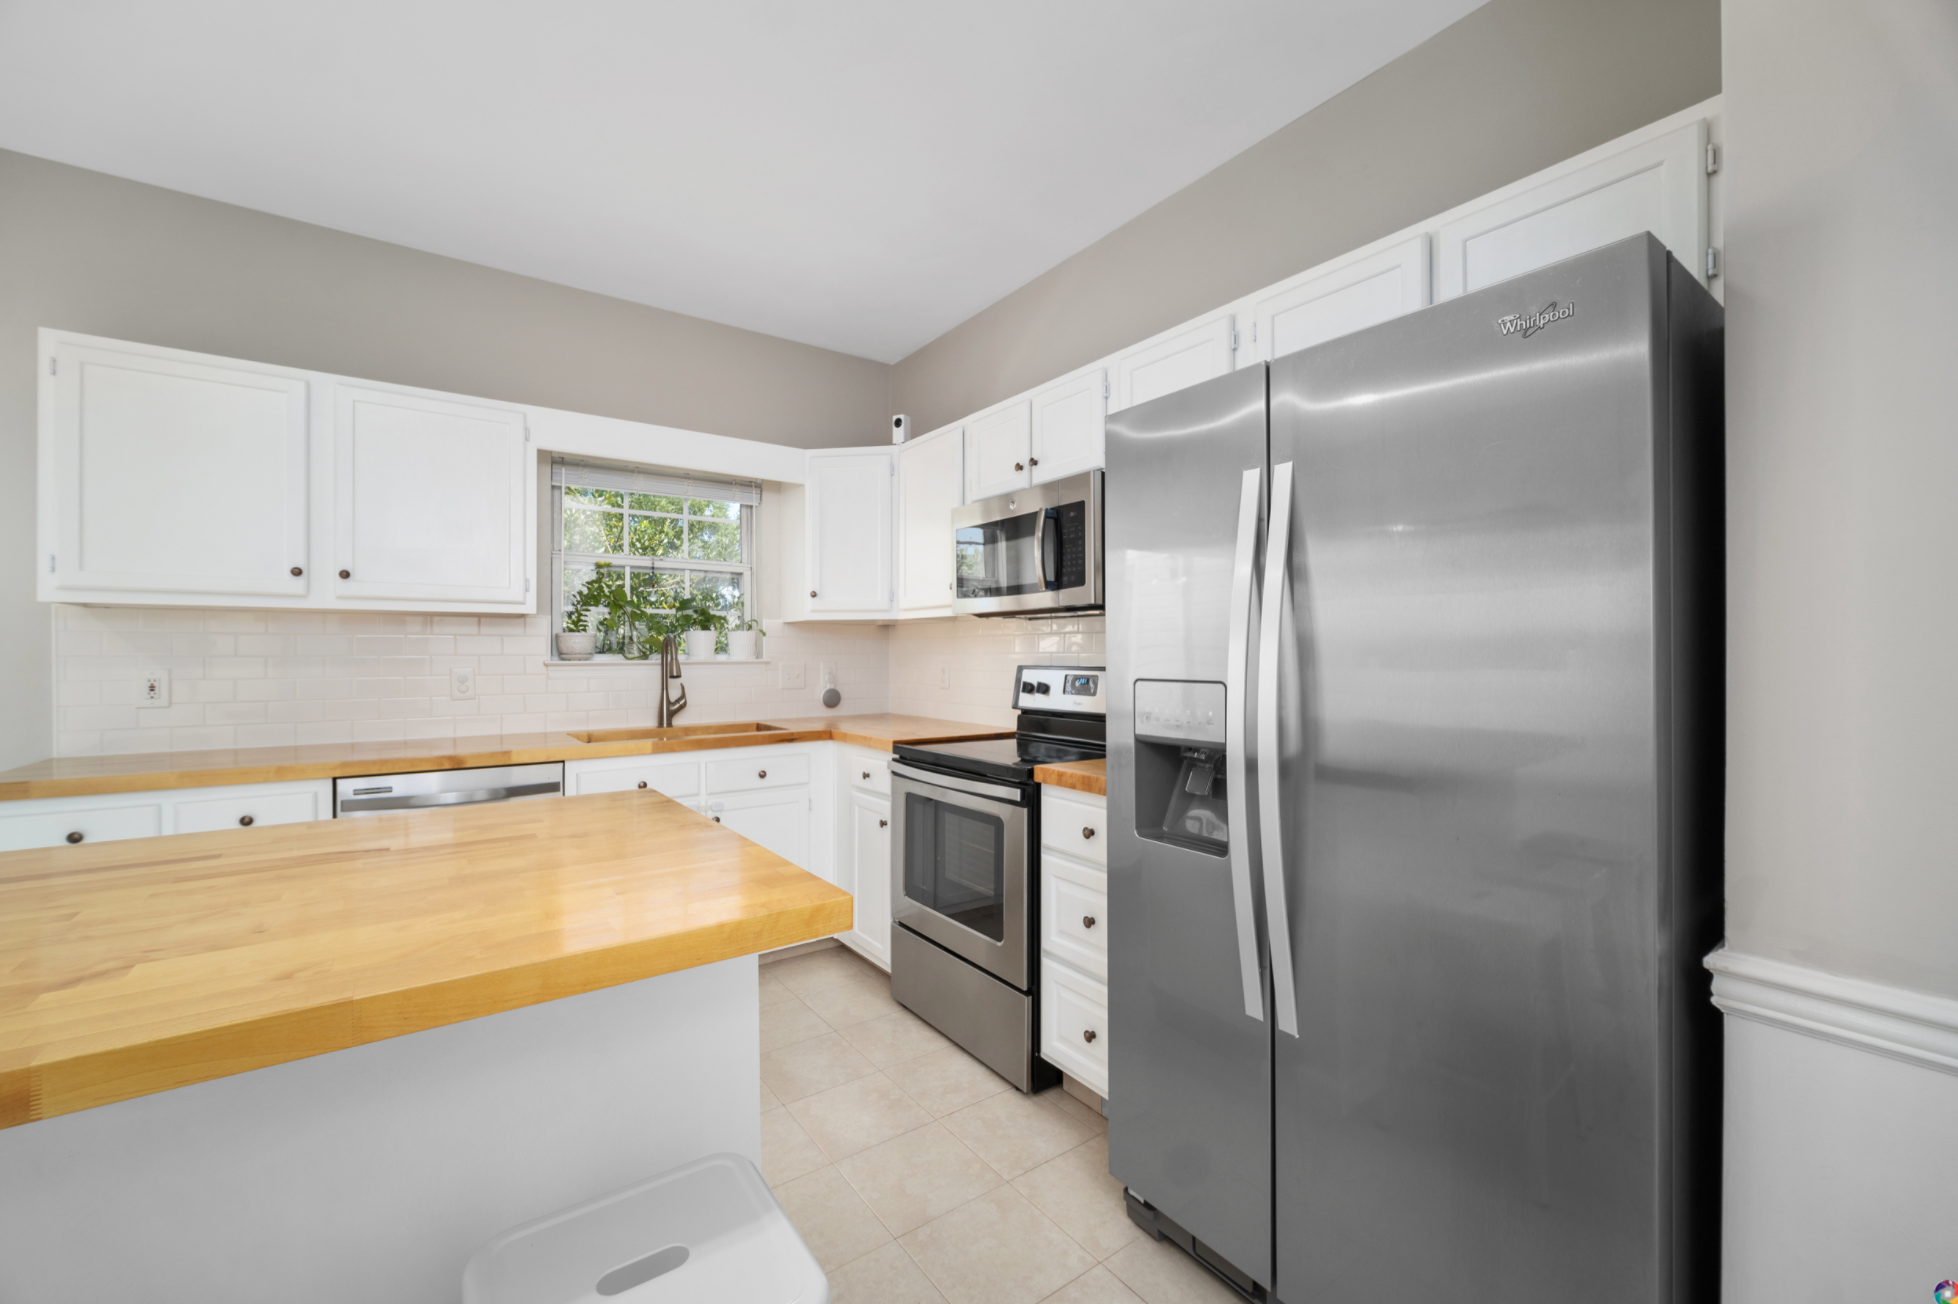 bright and airy kitchen remodel - white cabinets and butcher block counters with subway tile backsplash, stainless steel appliances